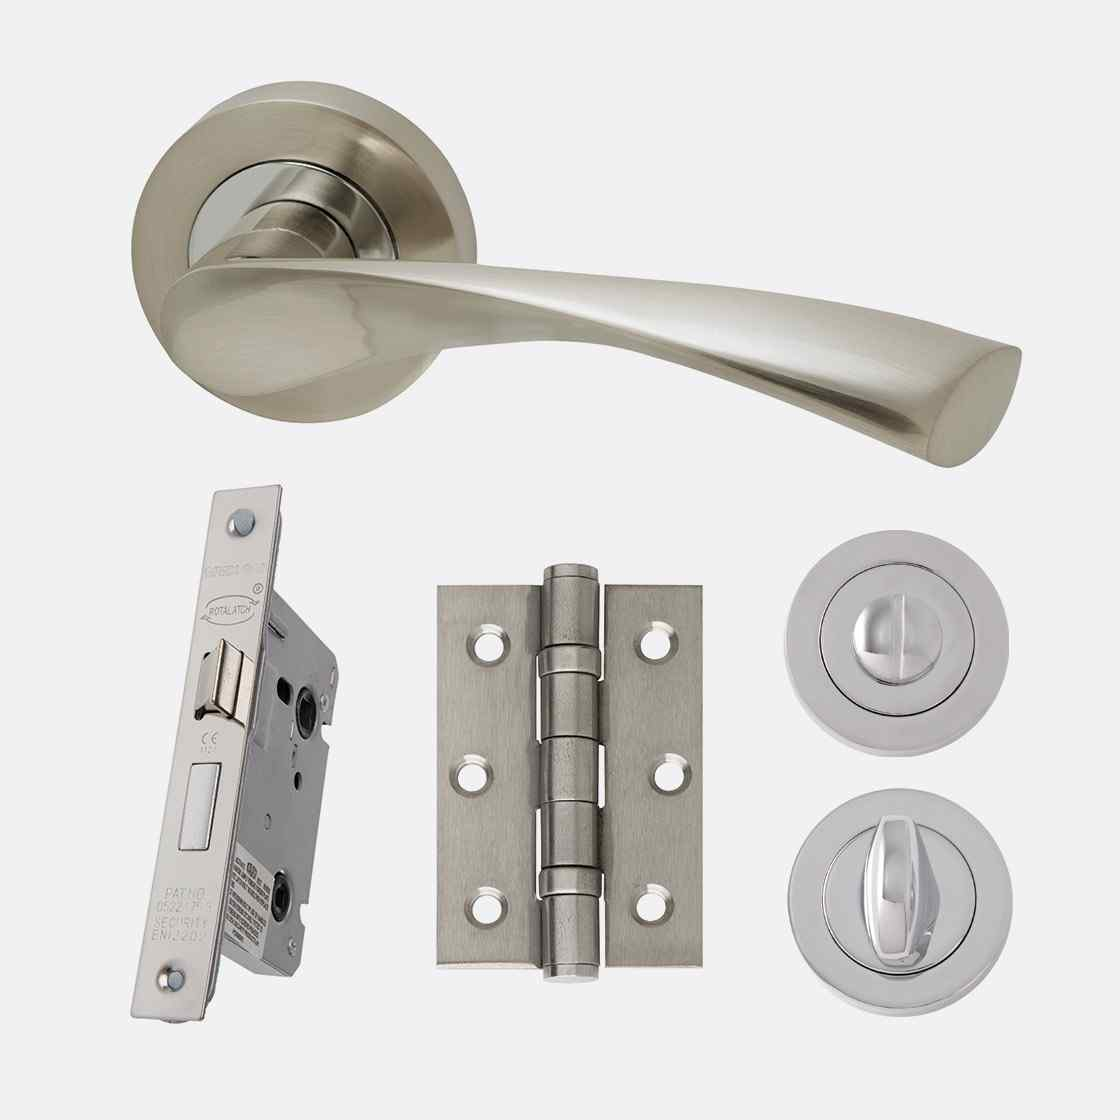 LPD Ironmongery Solar Privacy Handle Hardware Pack 1